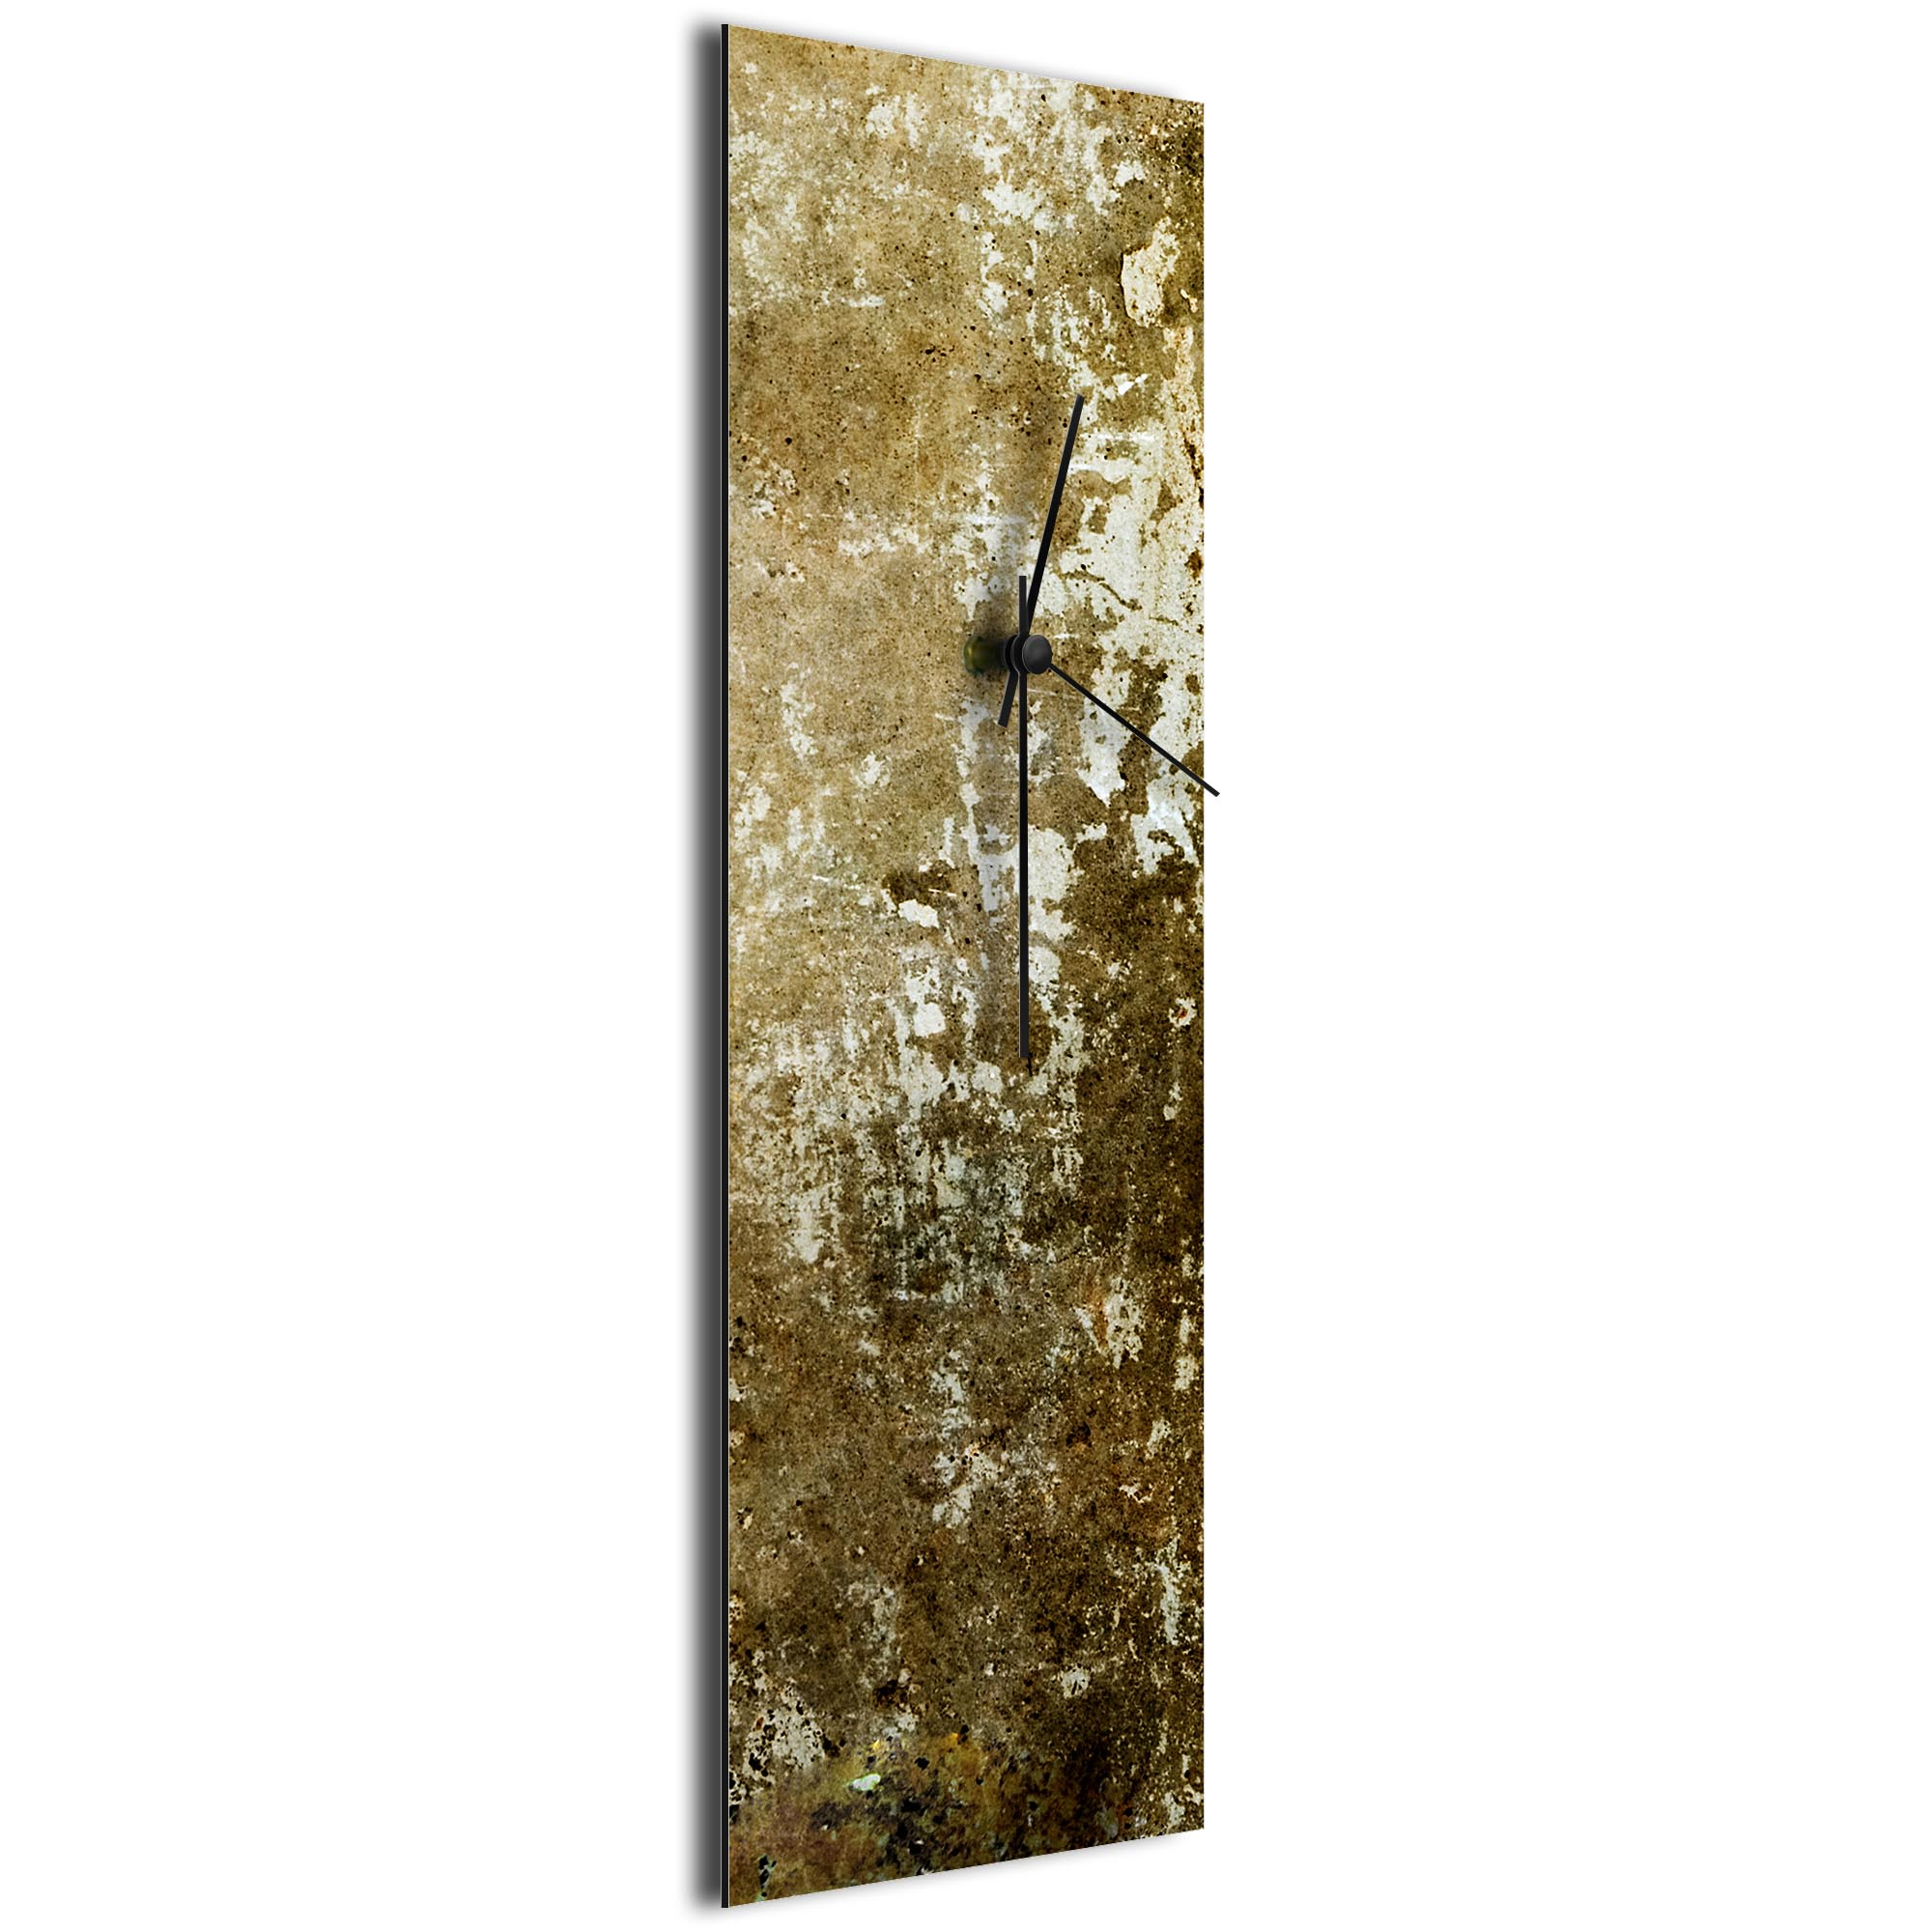 Sentinal Clock v3 by NAY - Distressed Modern Wall Clock - Image 2